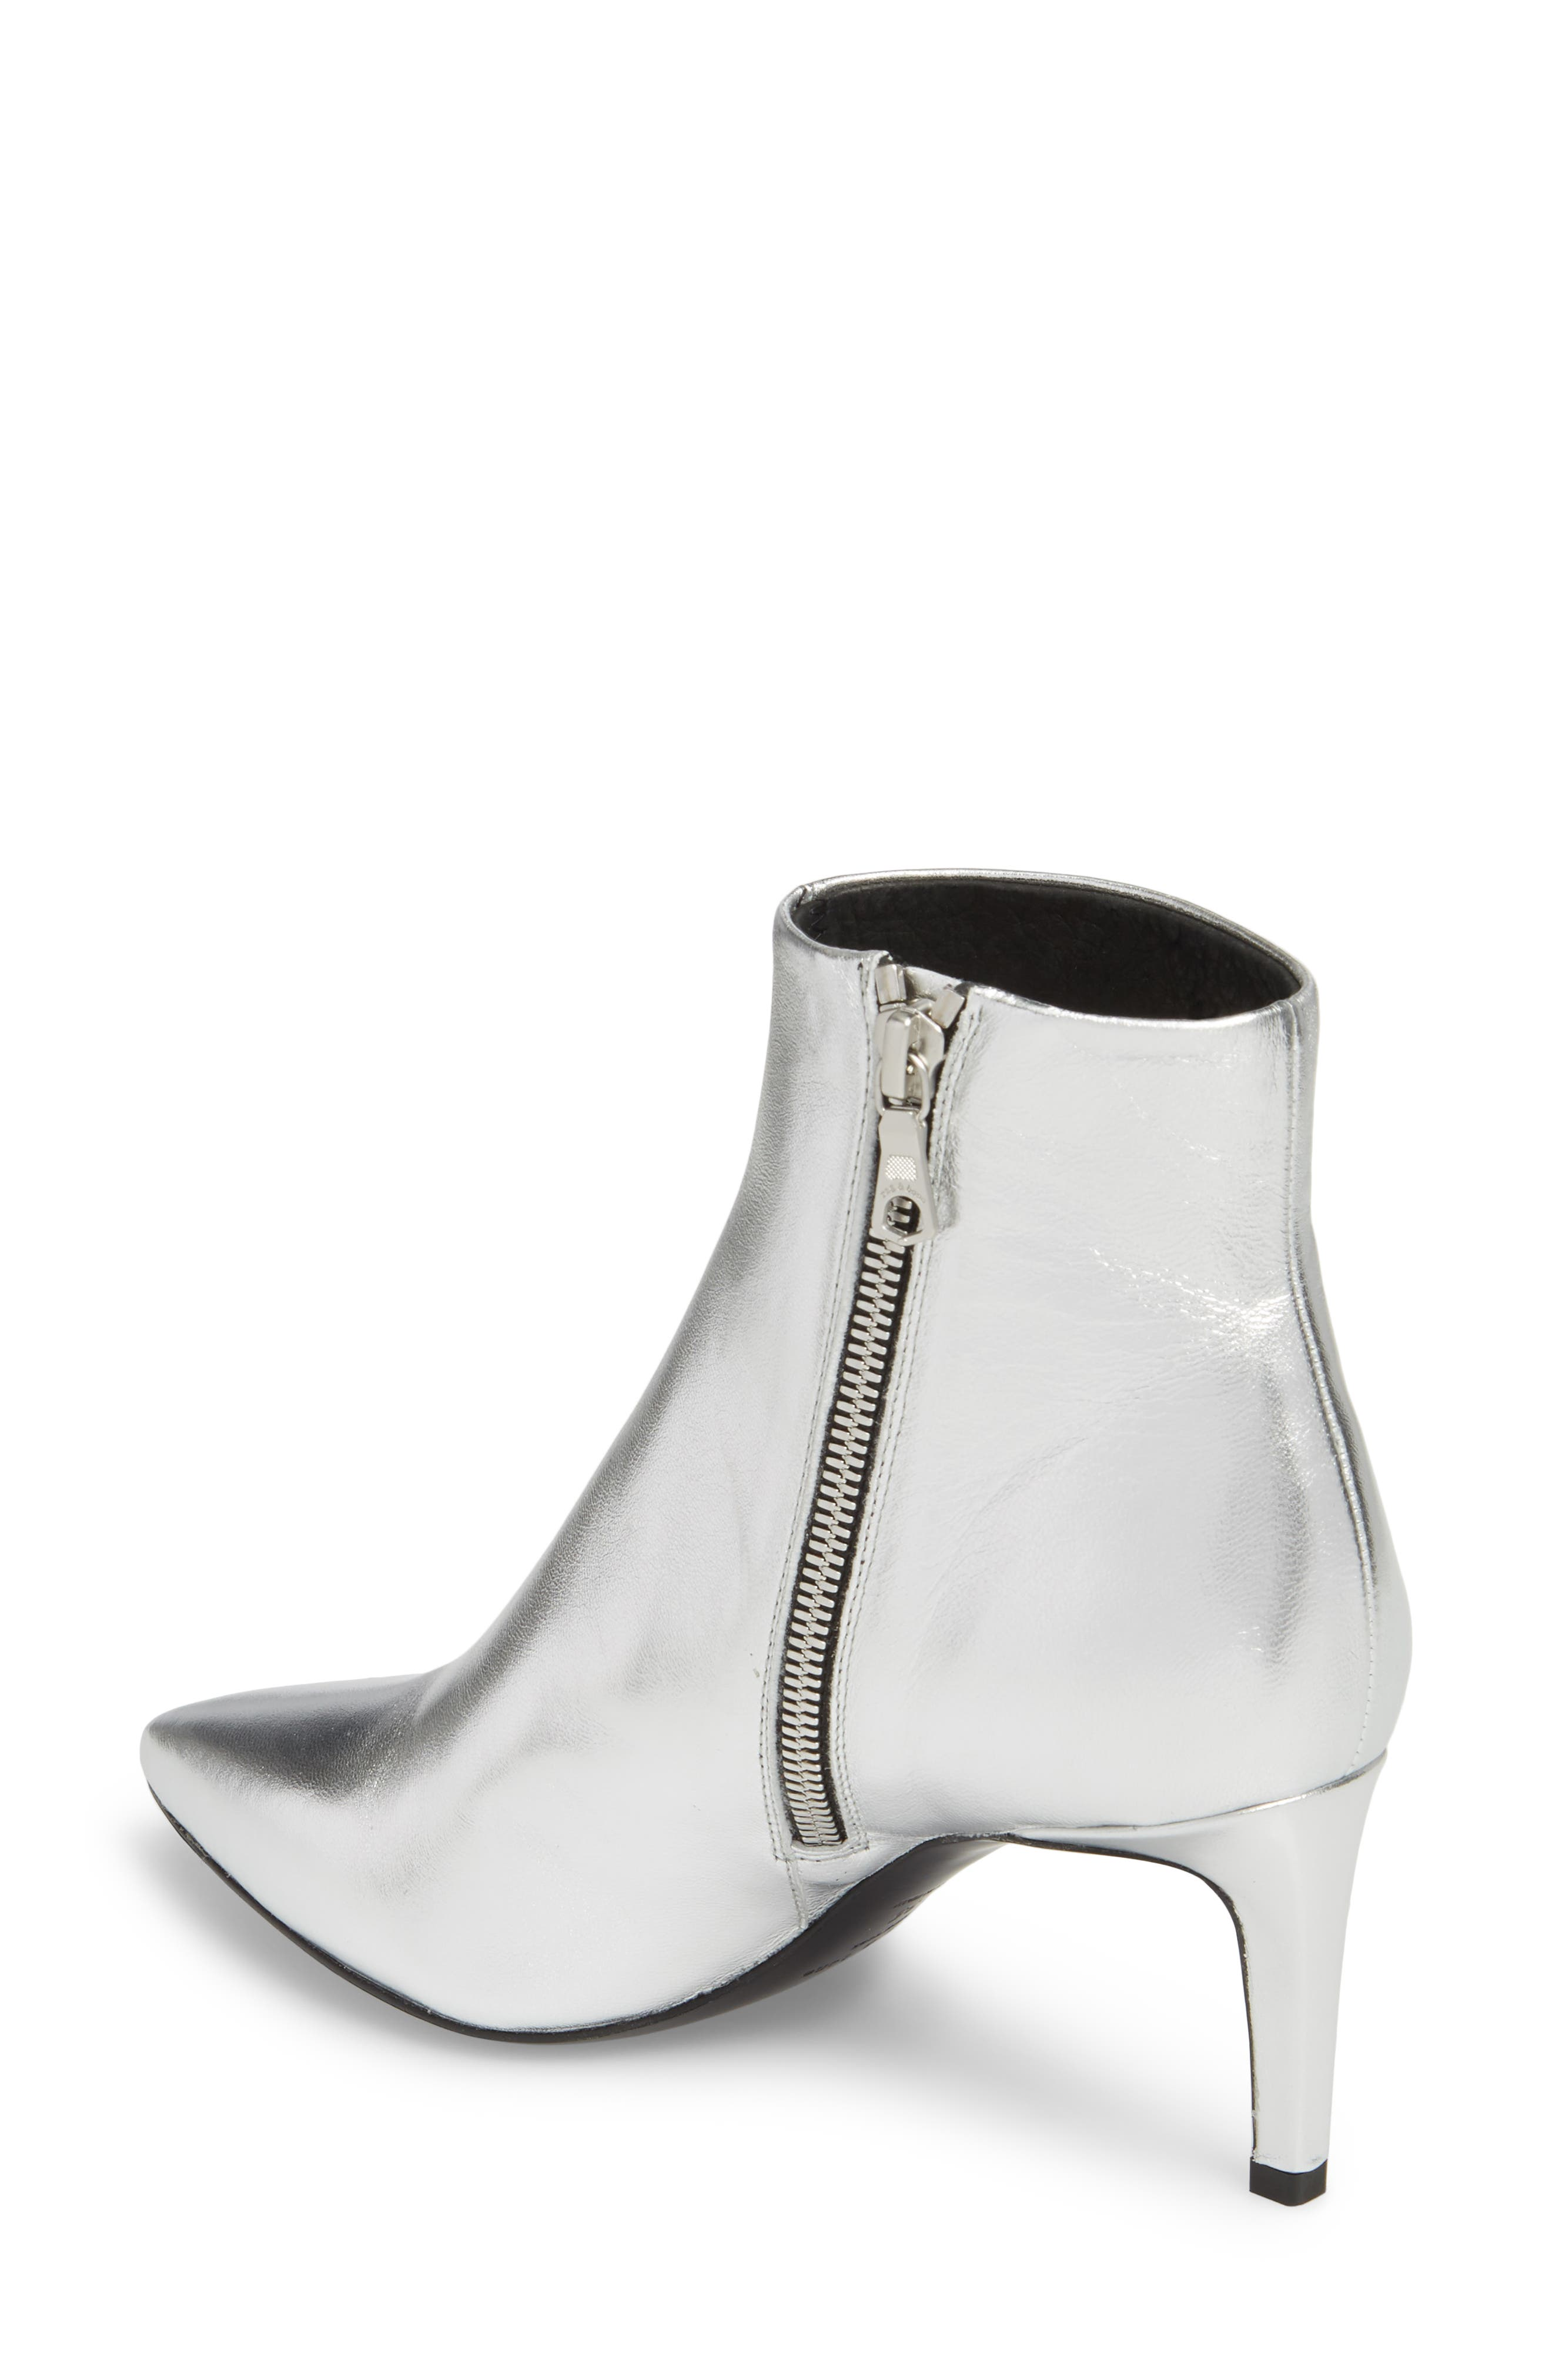 Beha Pointy Toe Bootie,                             Alternate thumbnail 2, color,                             Silver